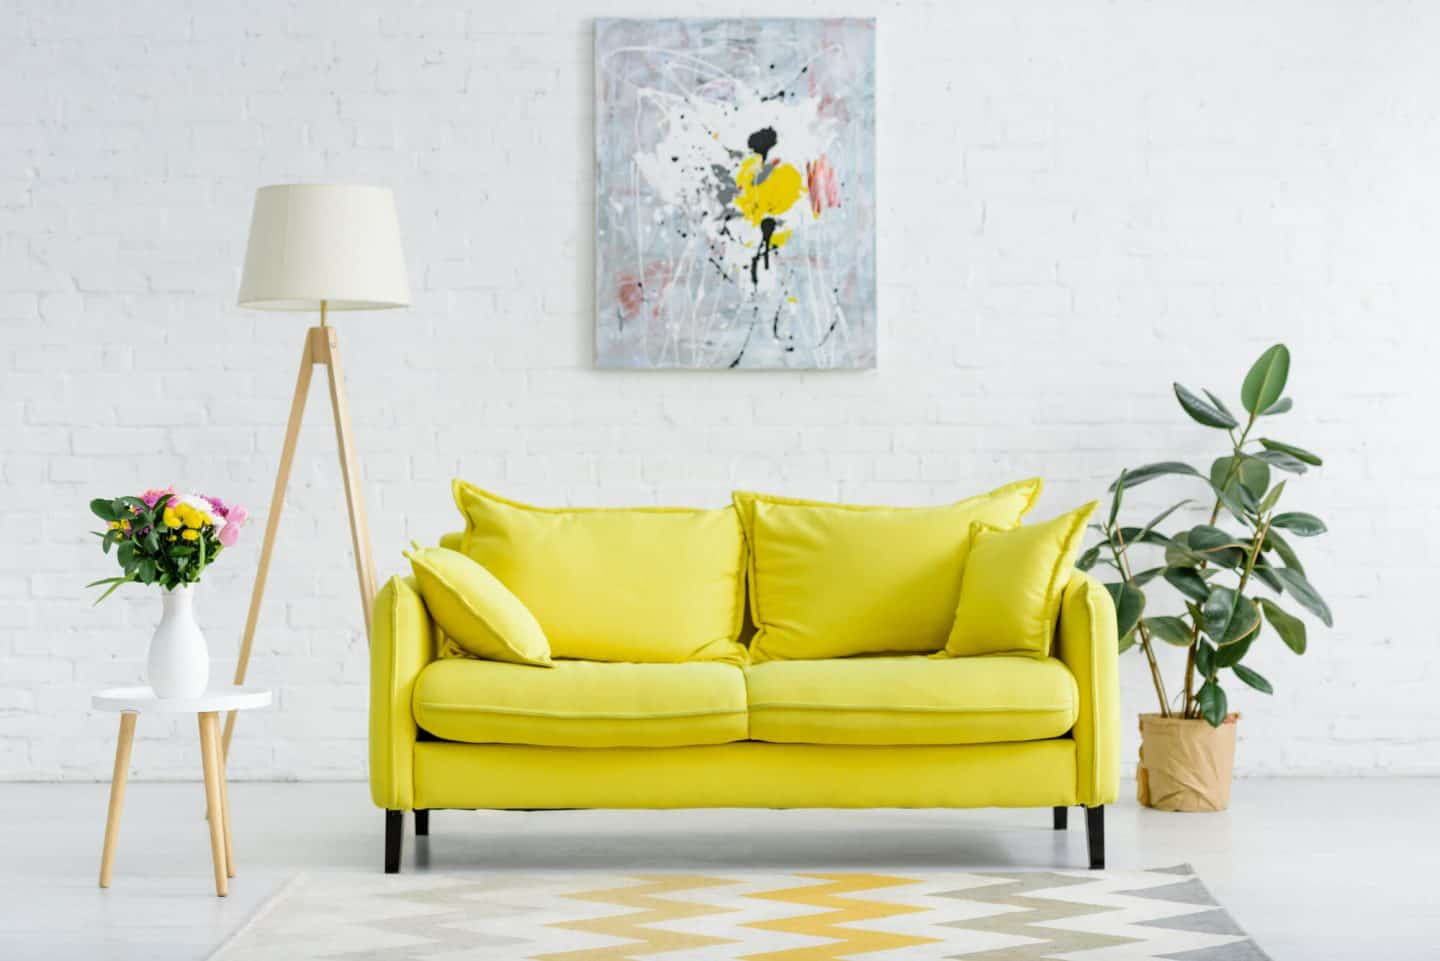 Choosing More Local Businesses For Your Home Decor